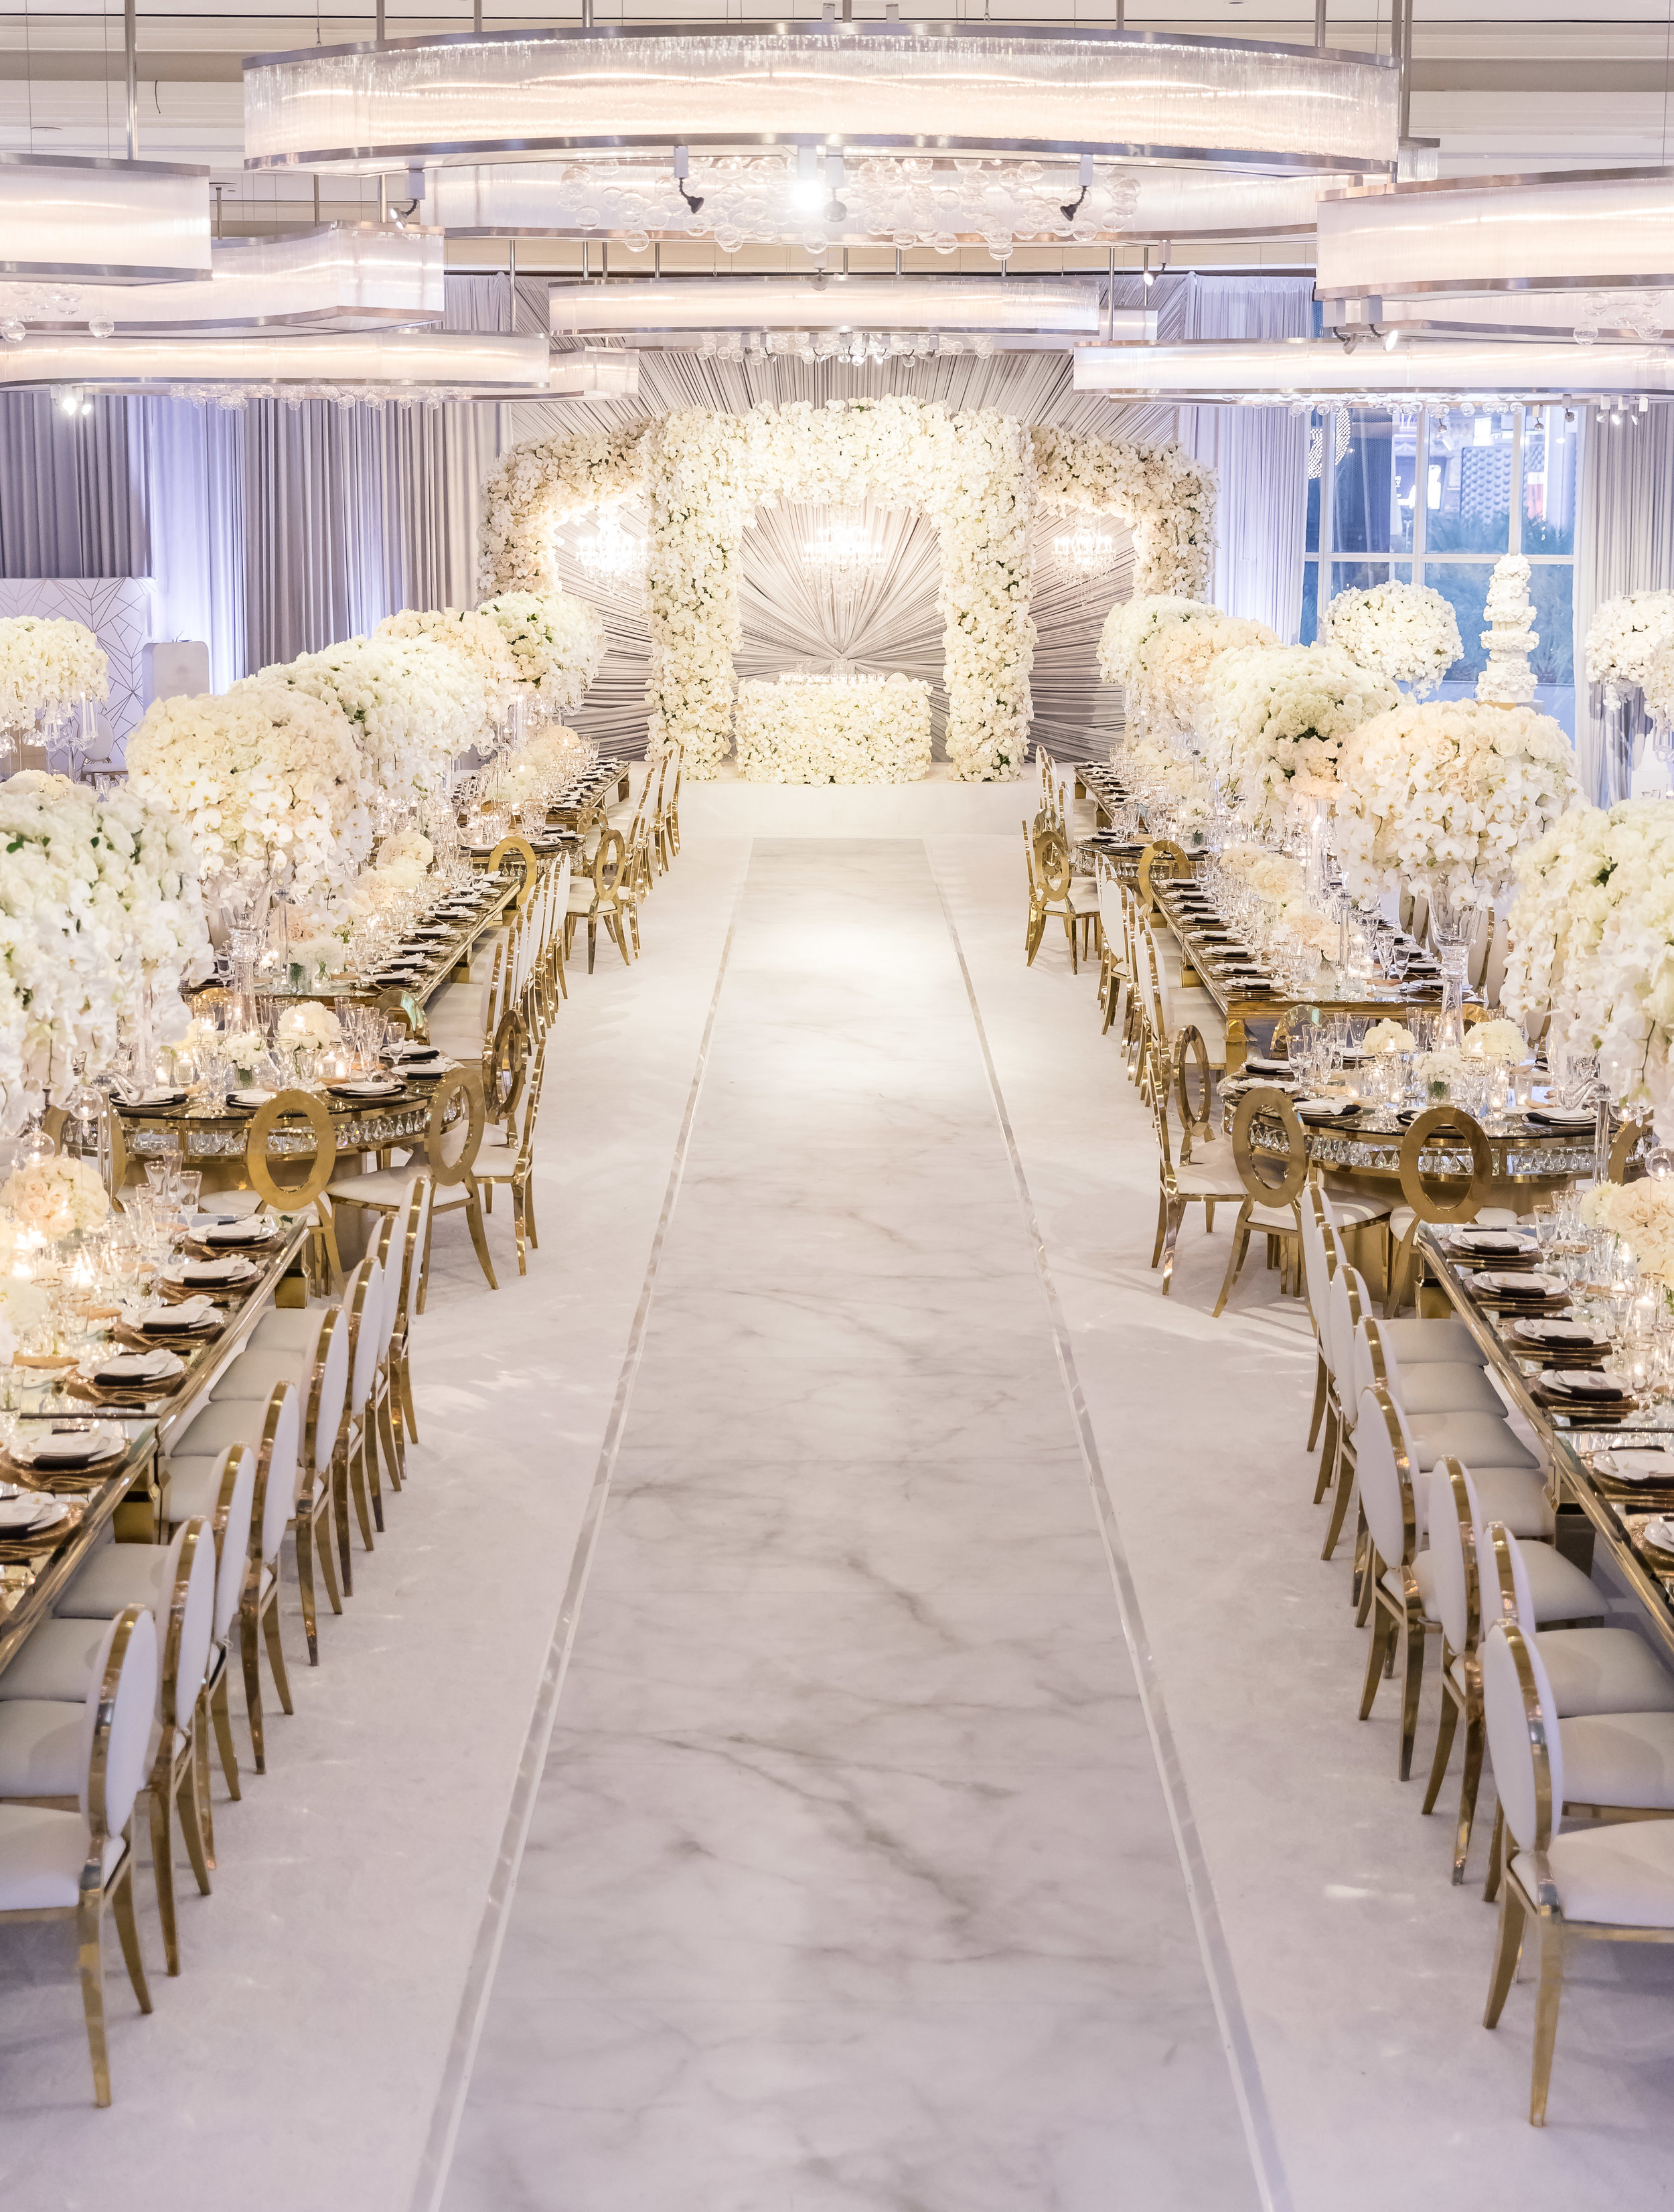 White and marble luxury wedding in Las Vegas with a long center aisle connecting each side.  Designed and Produced by Las Vegas Wedding Planner Andrea Eppolito. Images by Brian Leahy.